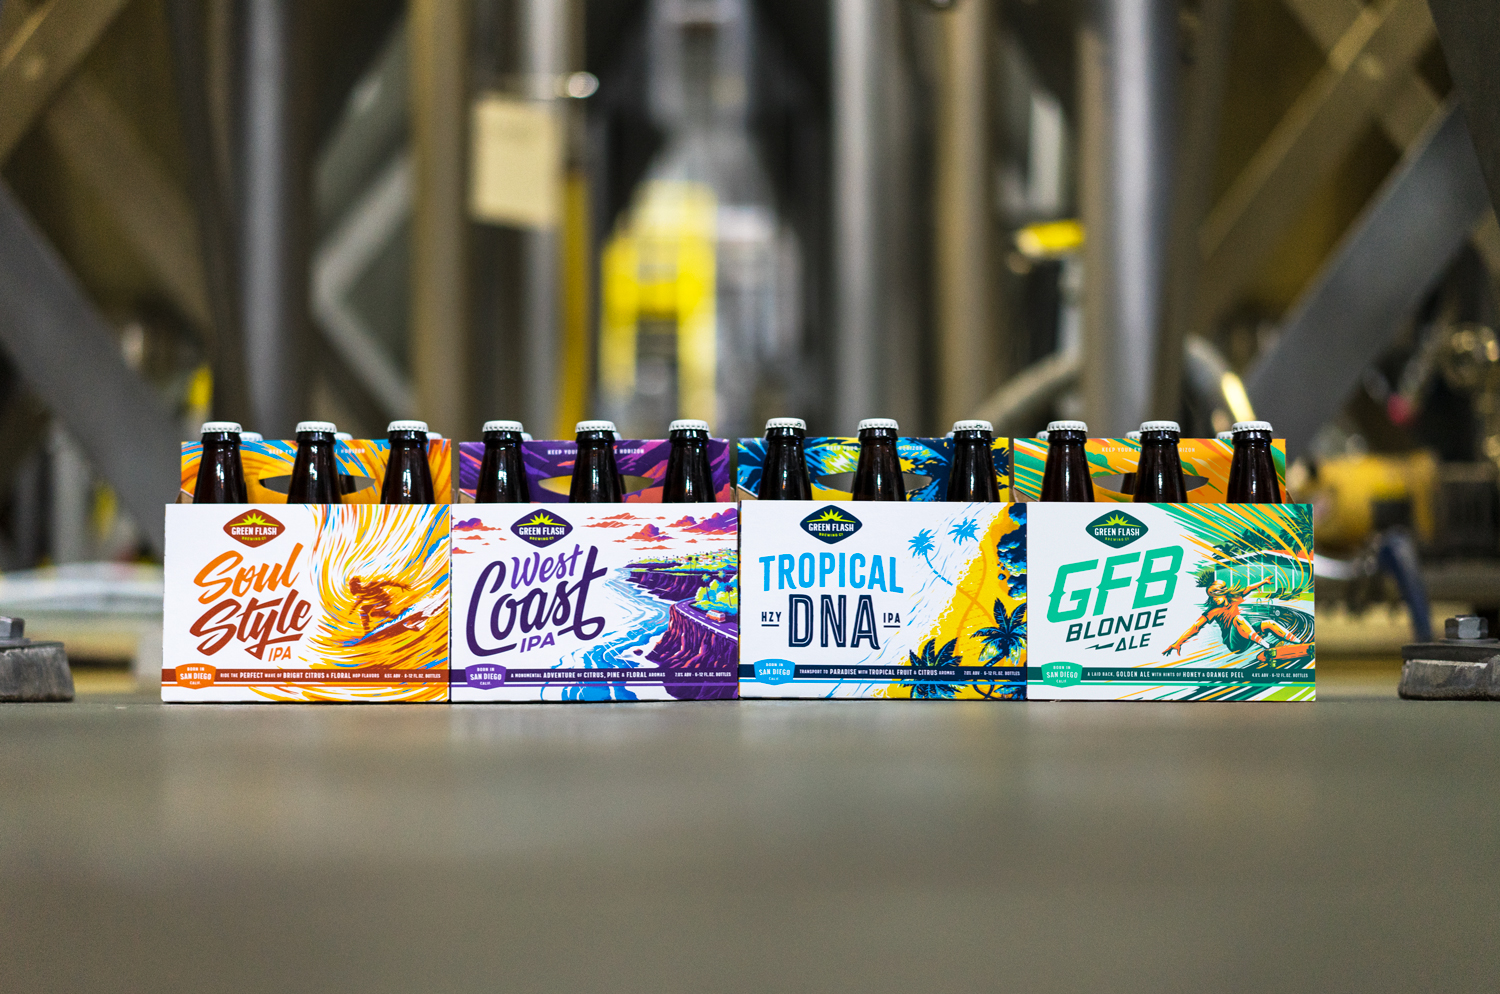 Beer & Branding: Green Flash